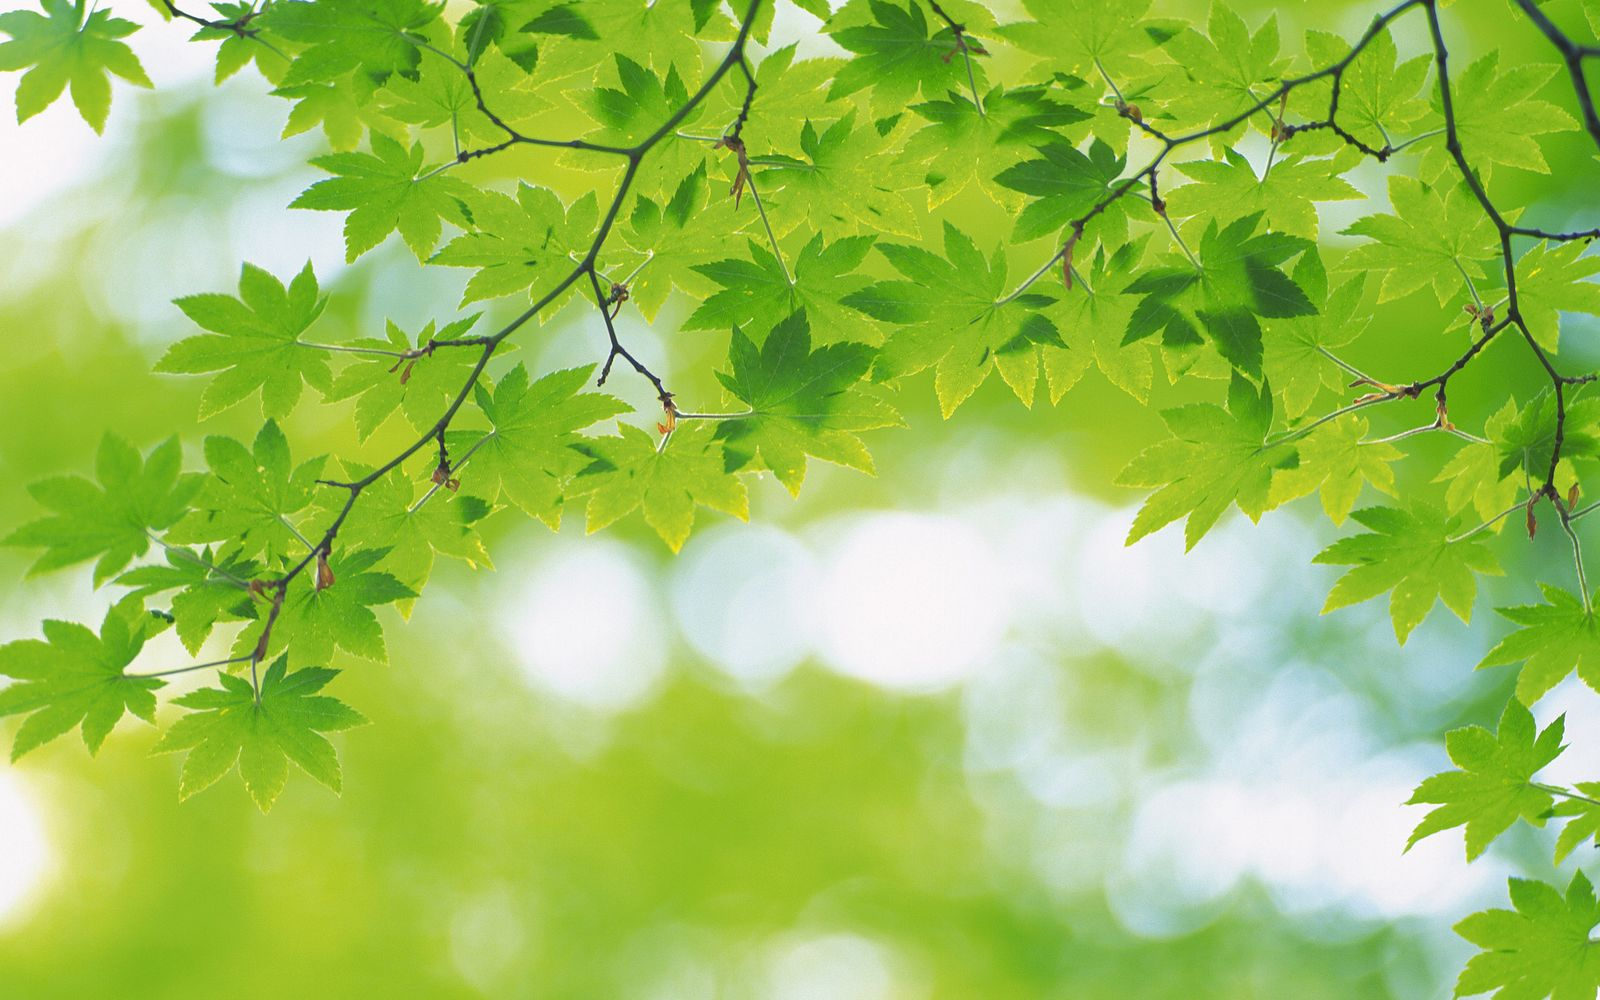 simple green leaves and green background